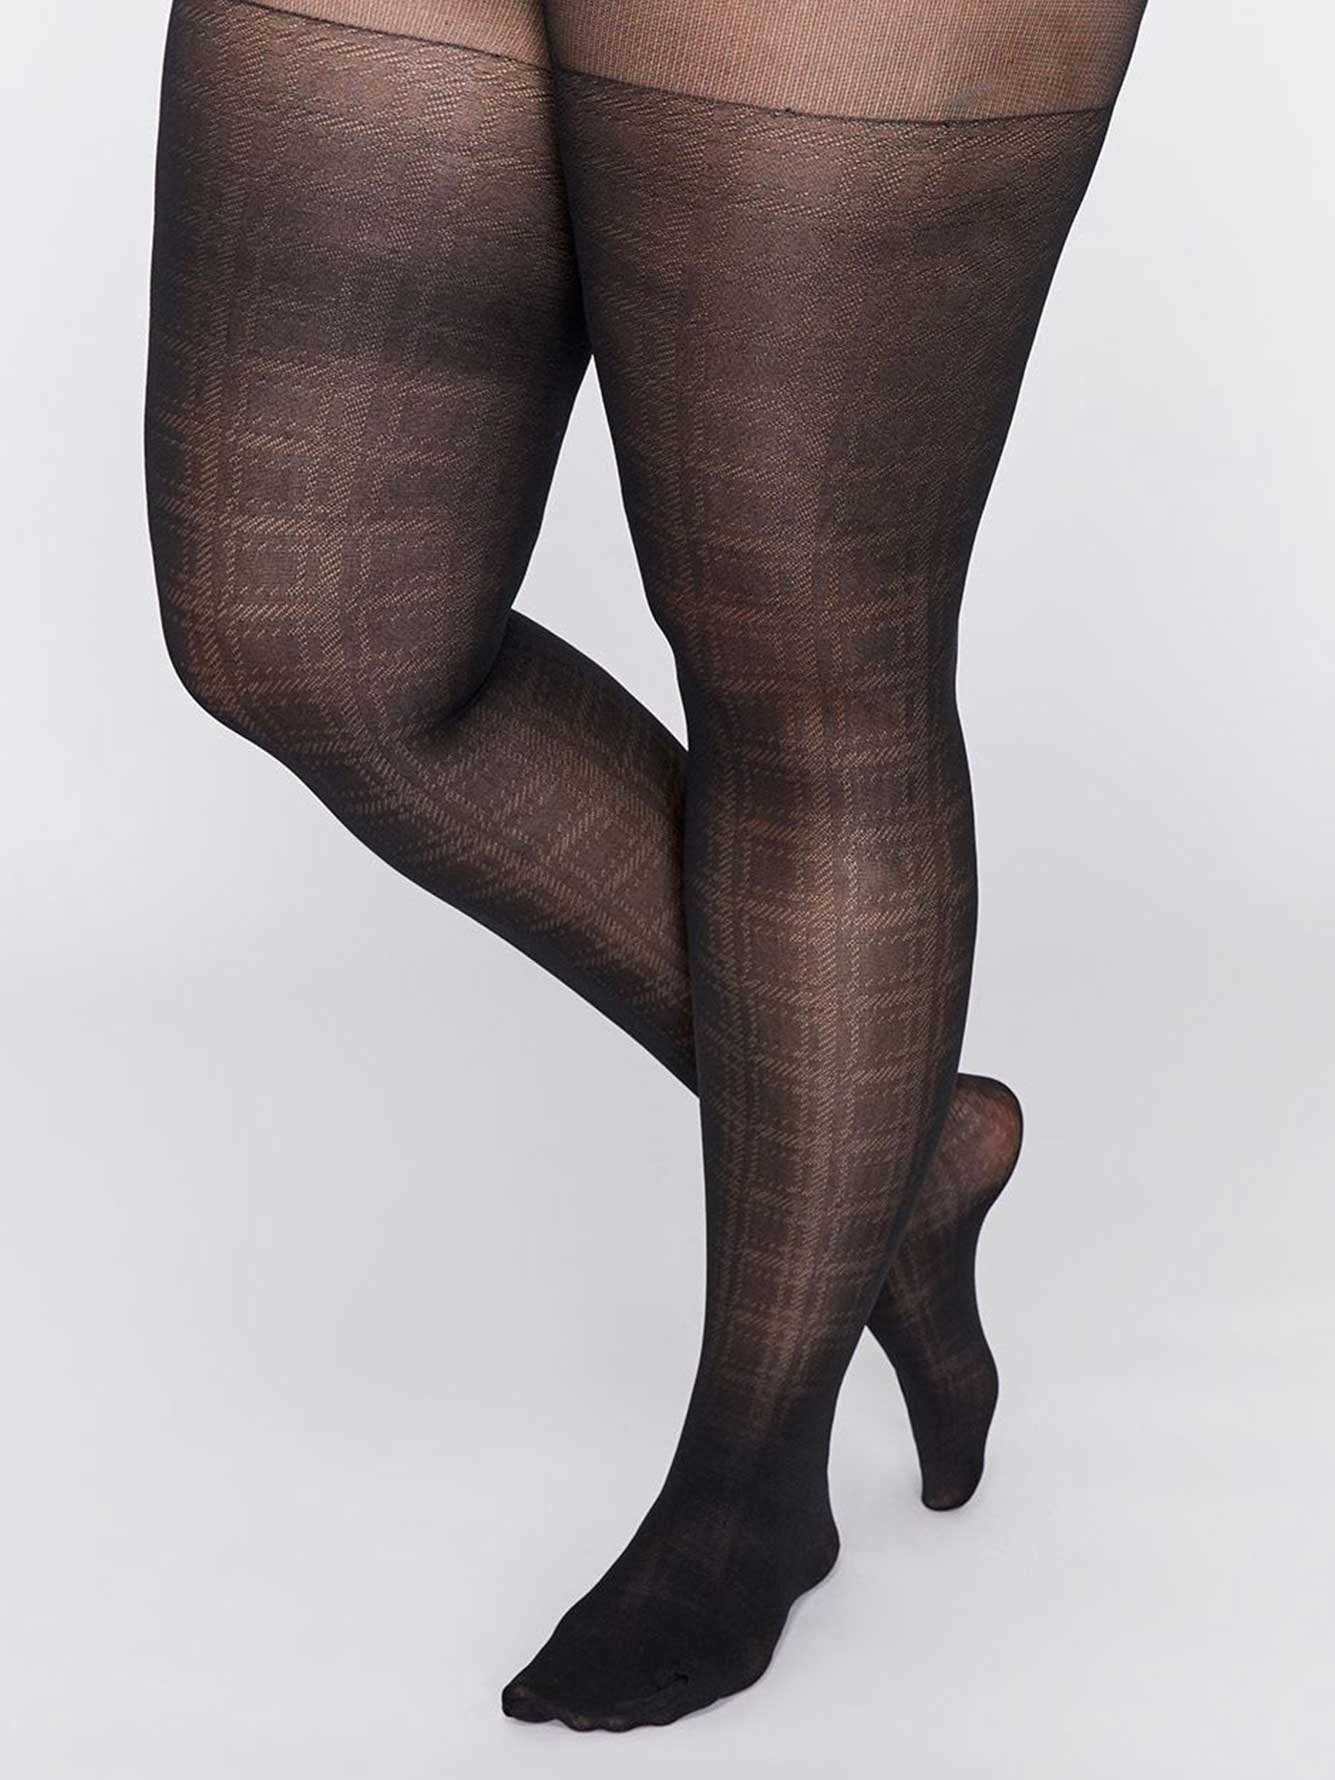 Patterned Plaid Tights